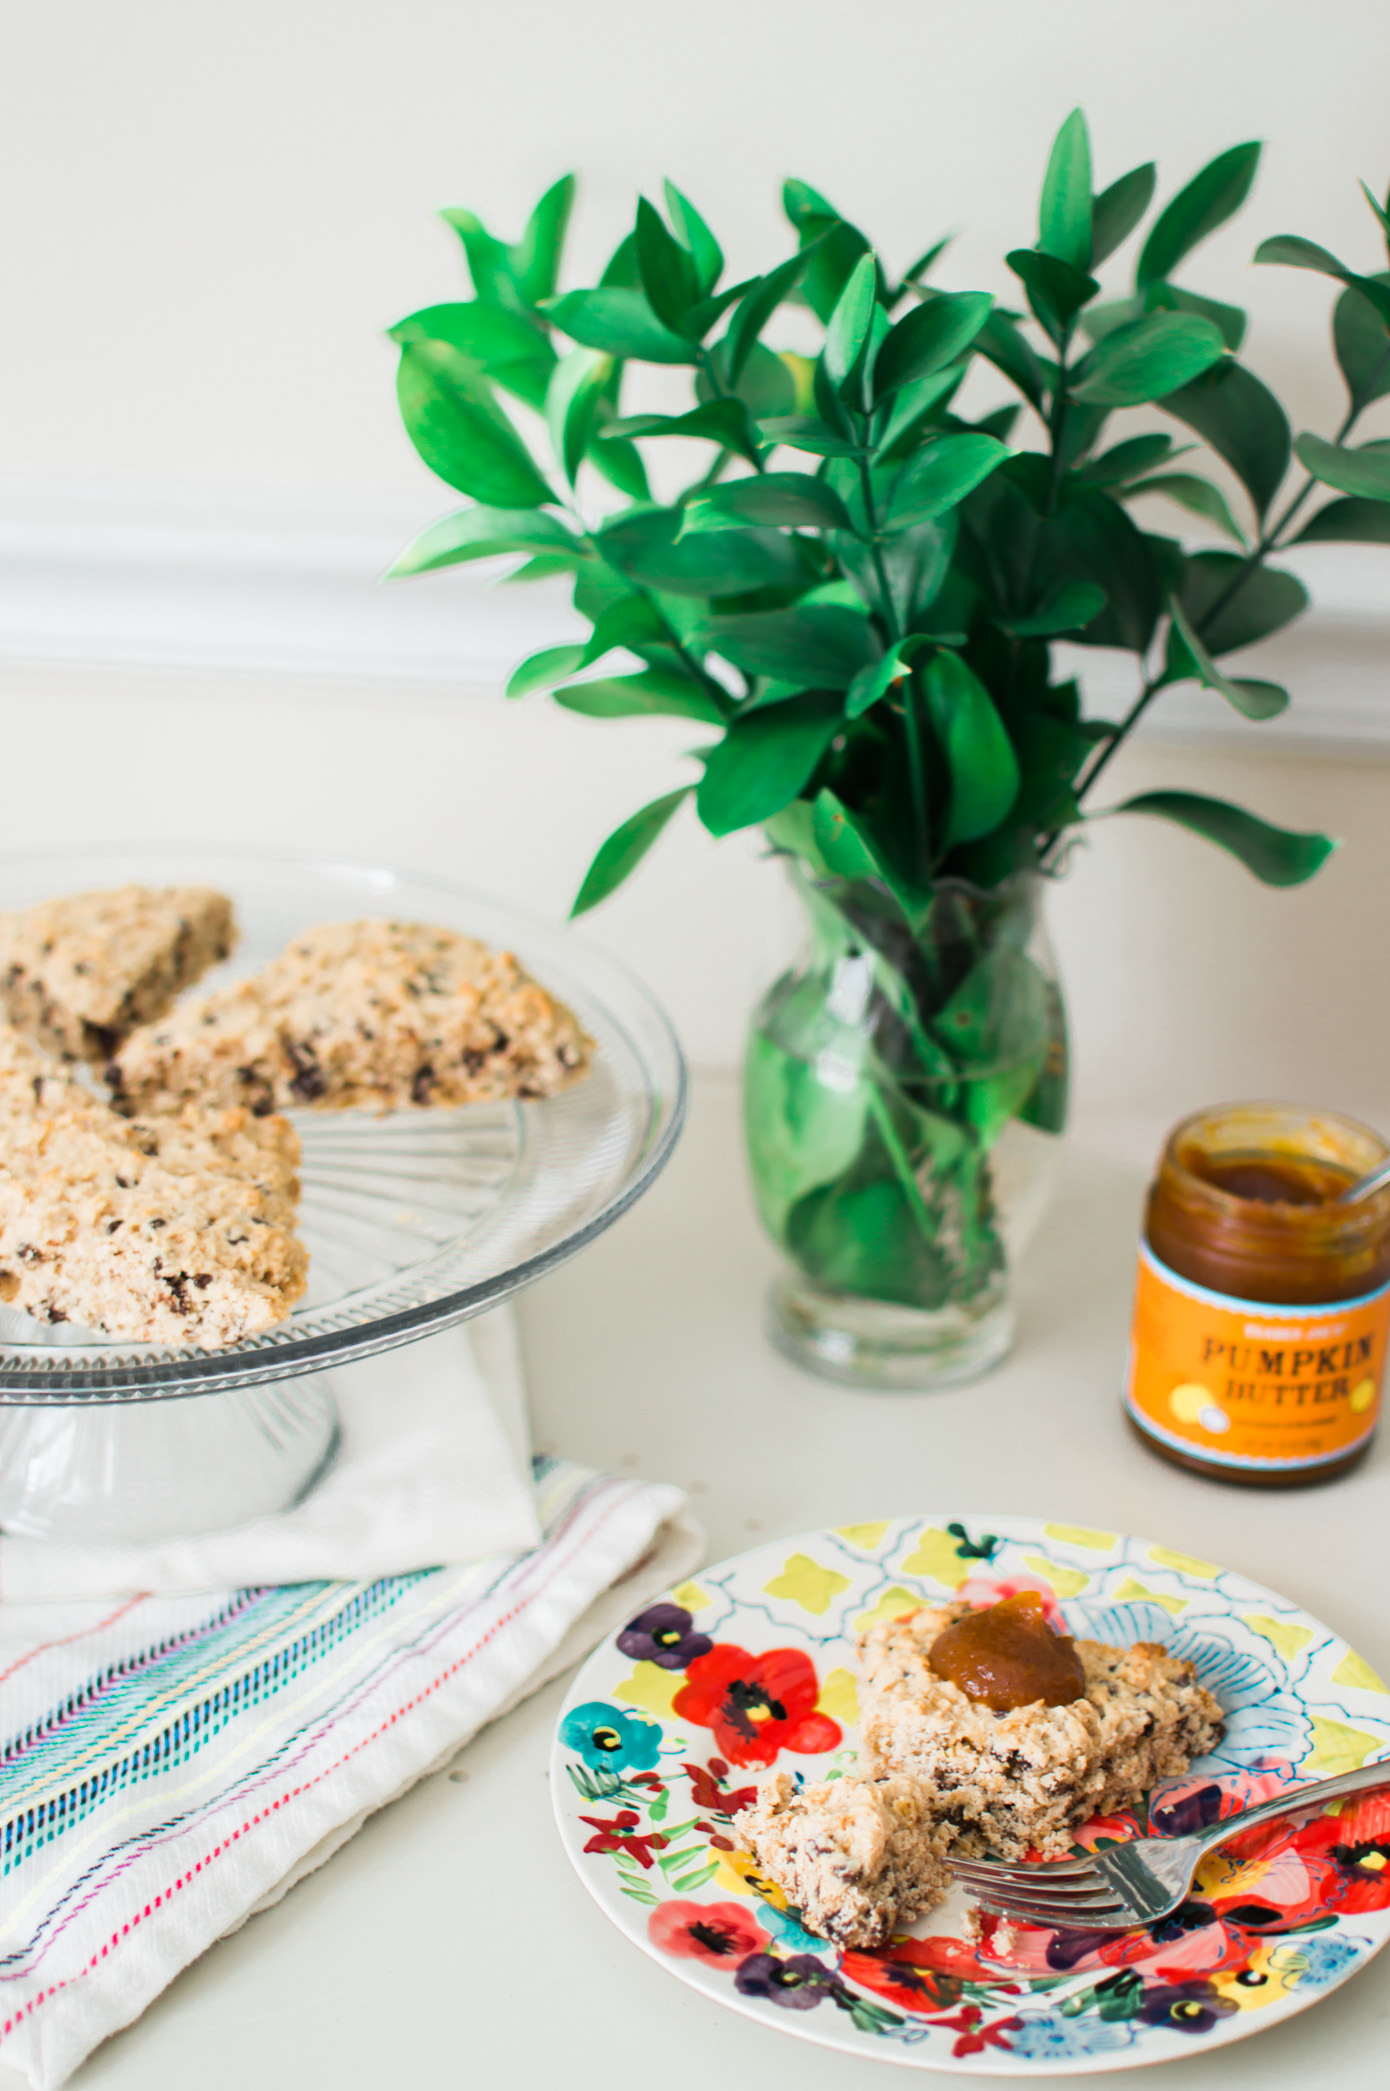 Chocolate Chip Scones with Pumpkin Granola | Fall Pumpkin Recipe | Louella Reese Life & Style Blog